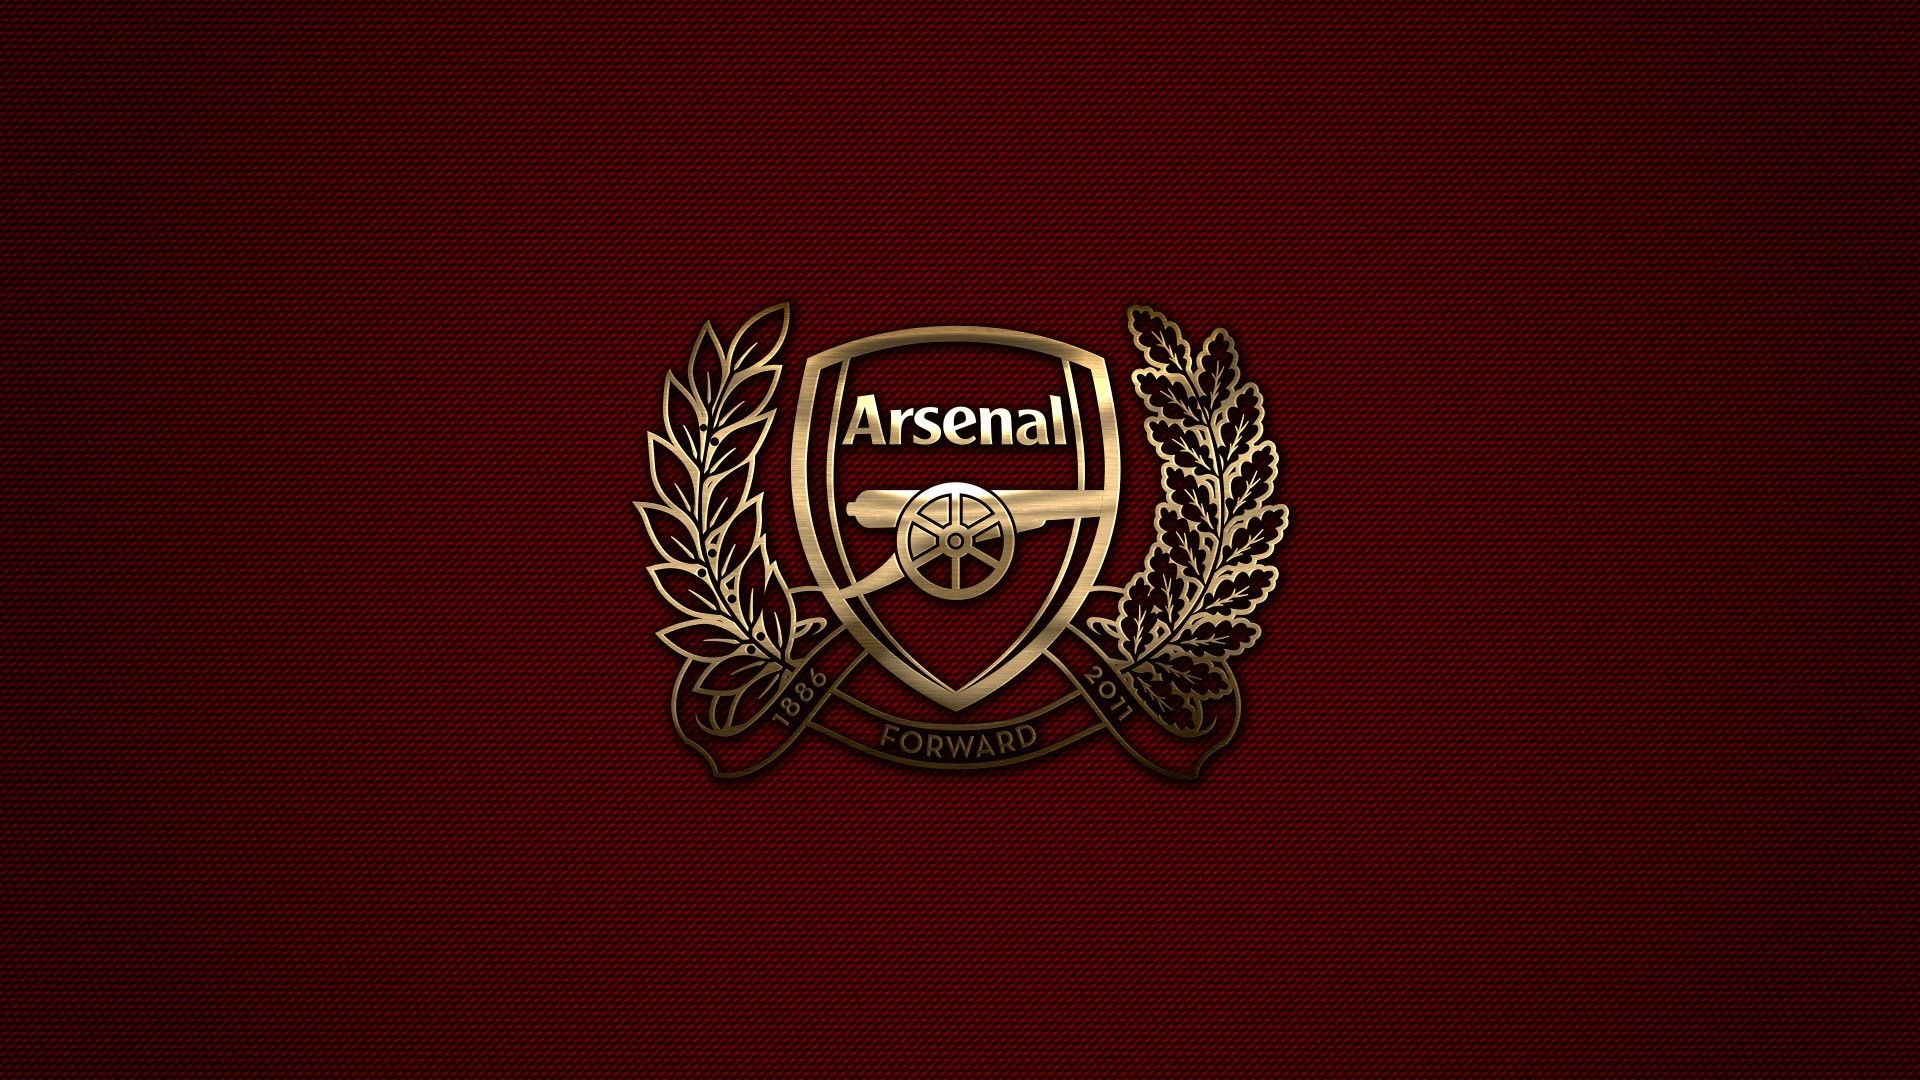 Arsenal Logo Wallpaper HD | Wallpaper | Pinterest | Arsenal wallpapers, Arsenal and Wallpaper